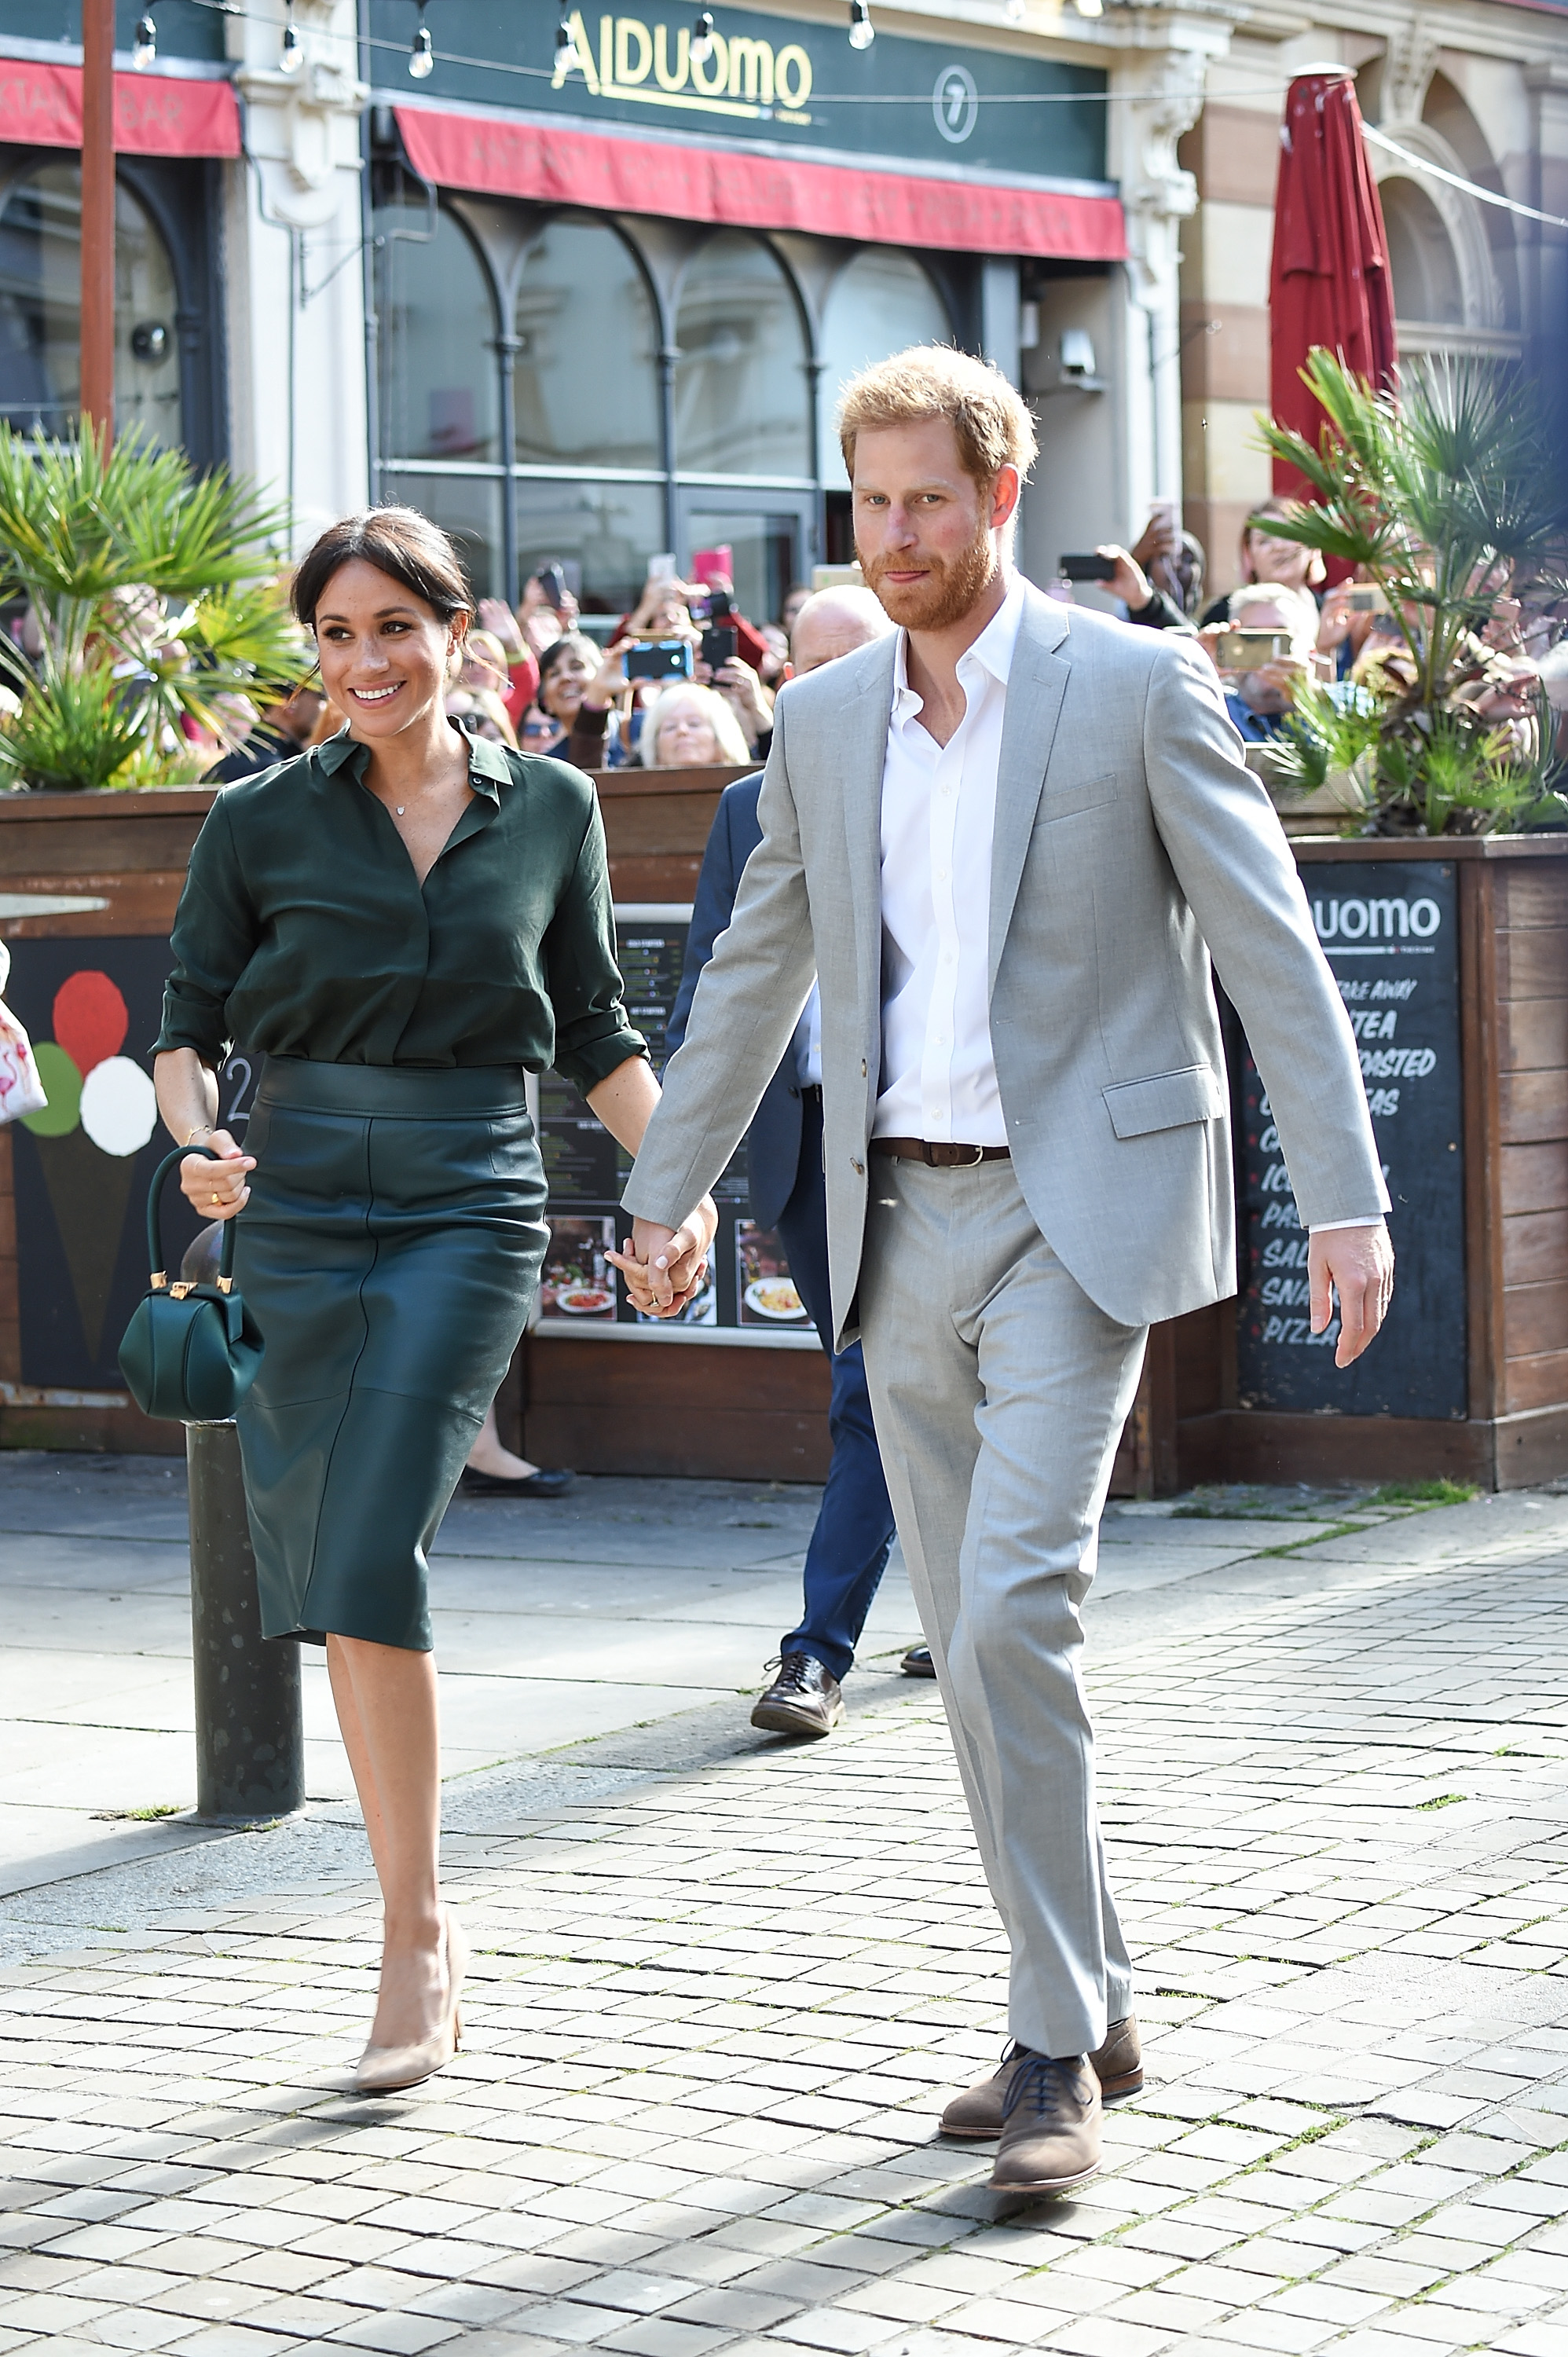 Prince Harry and Meghan Markle in Brighton during an official visit to Sussex on October 3 (Getty Images)